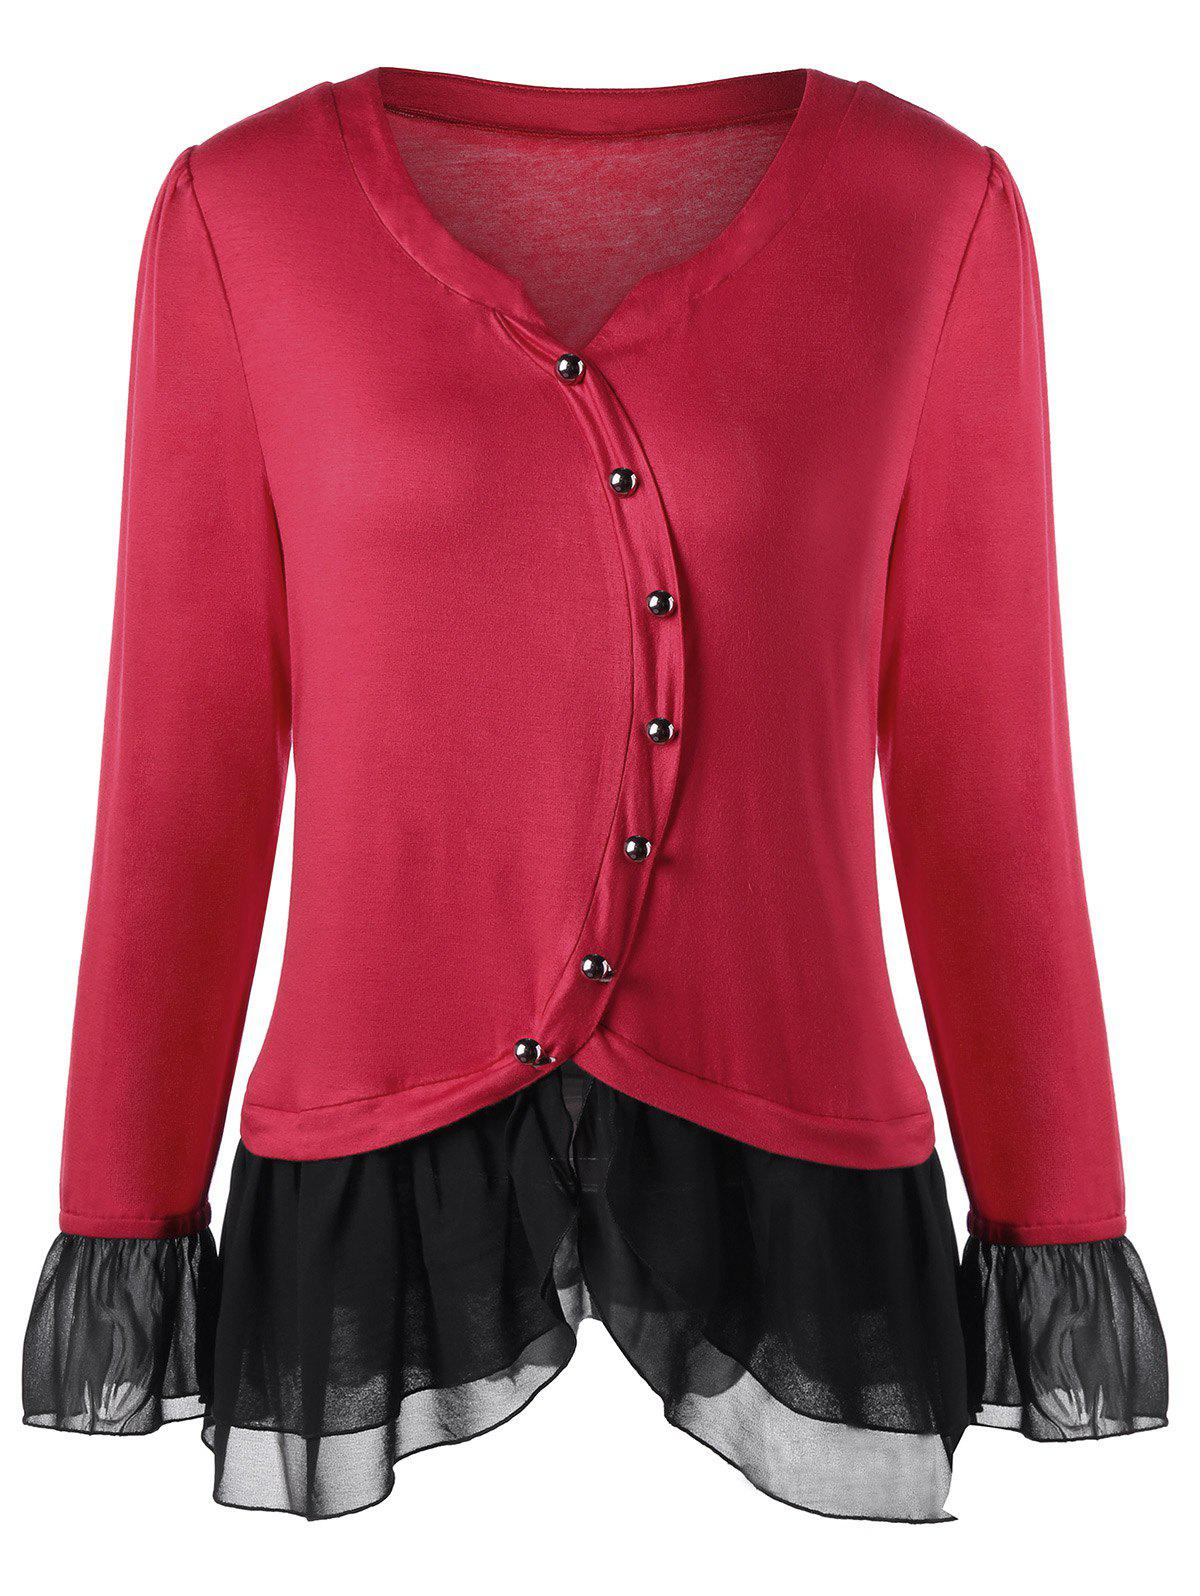 Plus Size Two Tone Button Detail TopWOMEN<br><br>Size: 3XL; Color: RED; Material: Rayon,Spandex; Shirt Length: Long; Sleeve Length: Full; Collar: Round Neck; Style: Fashion; Season: Fall,Spring; Embellishment: Button; Pattern Type: Solid; Weight: 0.3100kg; Package Contents: 1 x Top;